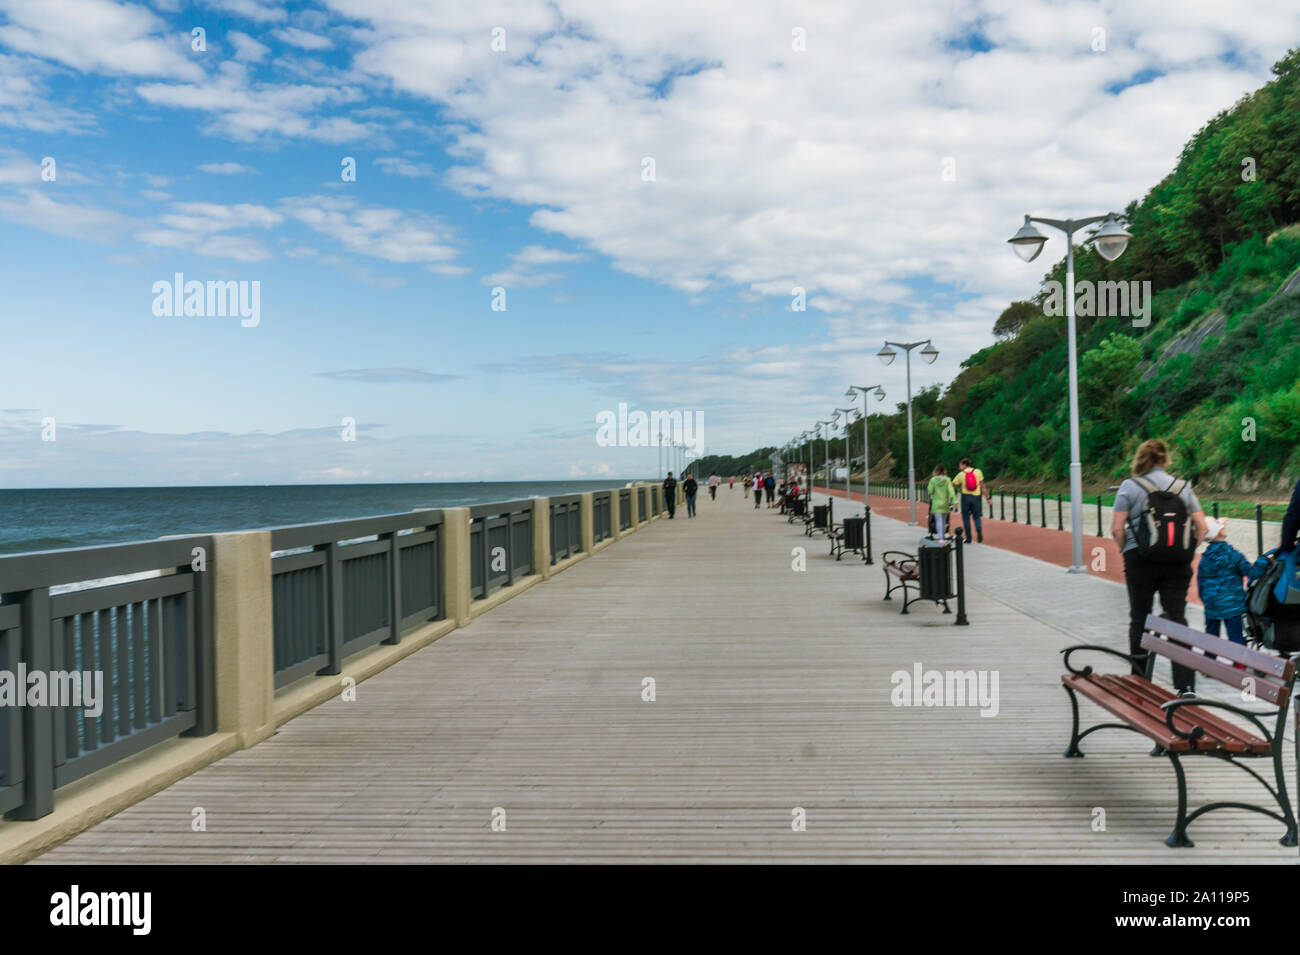 Promenade with wooden flooring in Svetlogorsk. Baltic sea. Landscape in the Kaliningrad region. Stock Photo